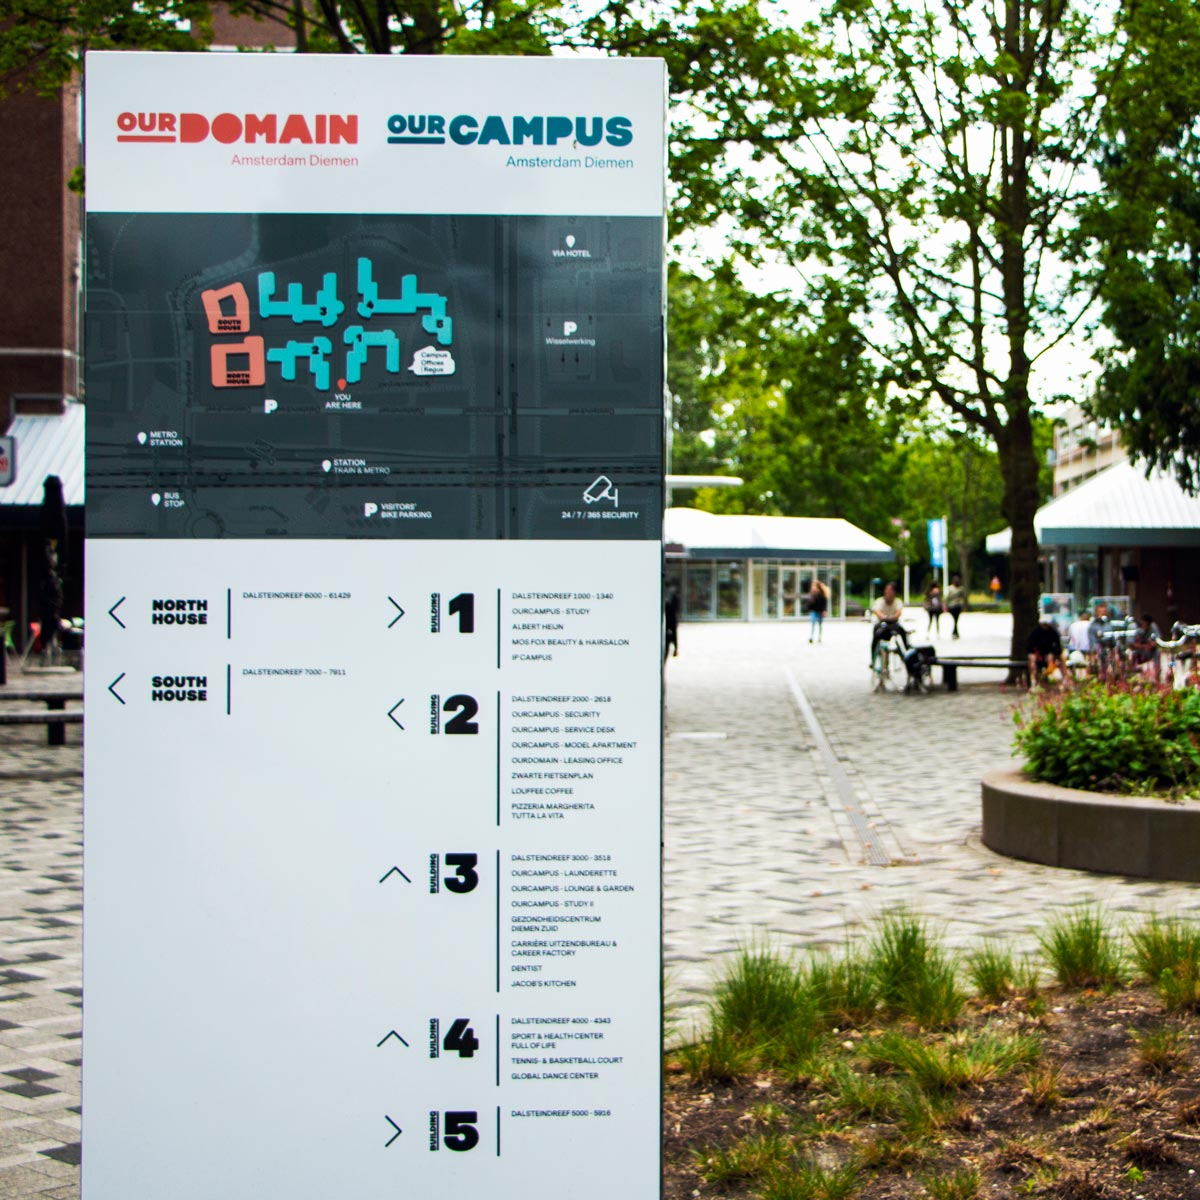 ourcampus ourdomain outdoor signage